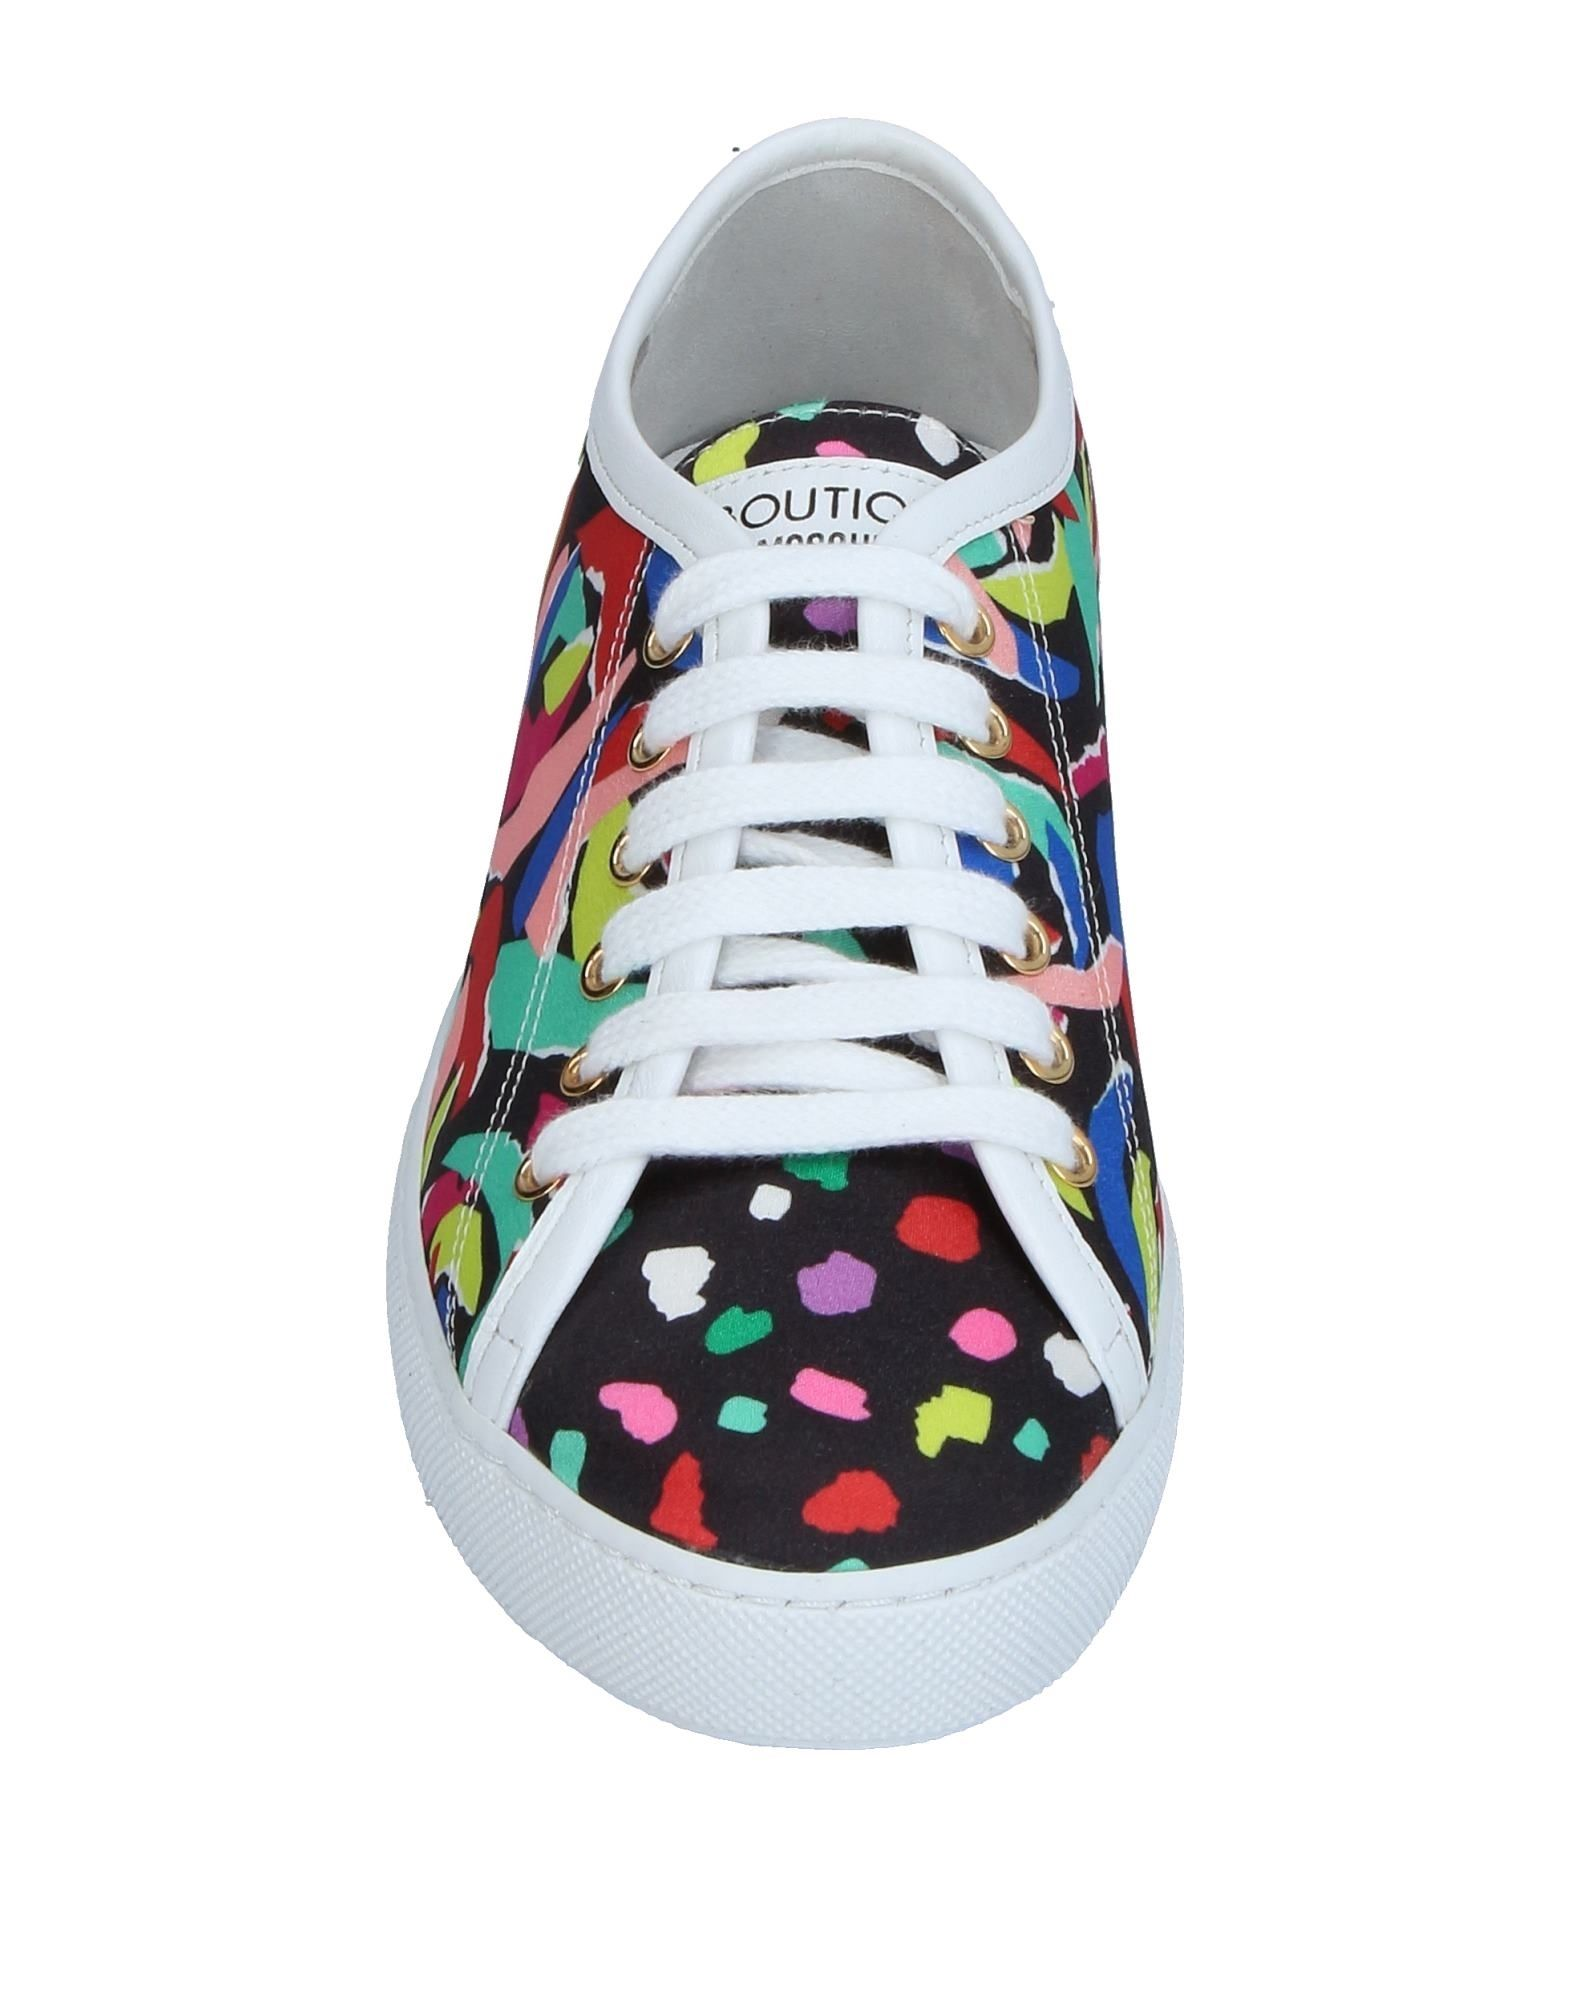 Sneakers Boutique Moschino Femme - Sneakers Boutique Moschino sur